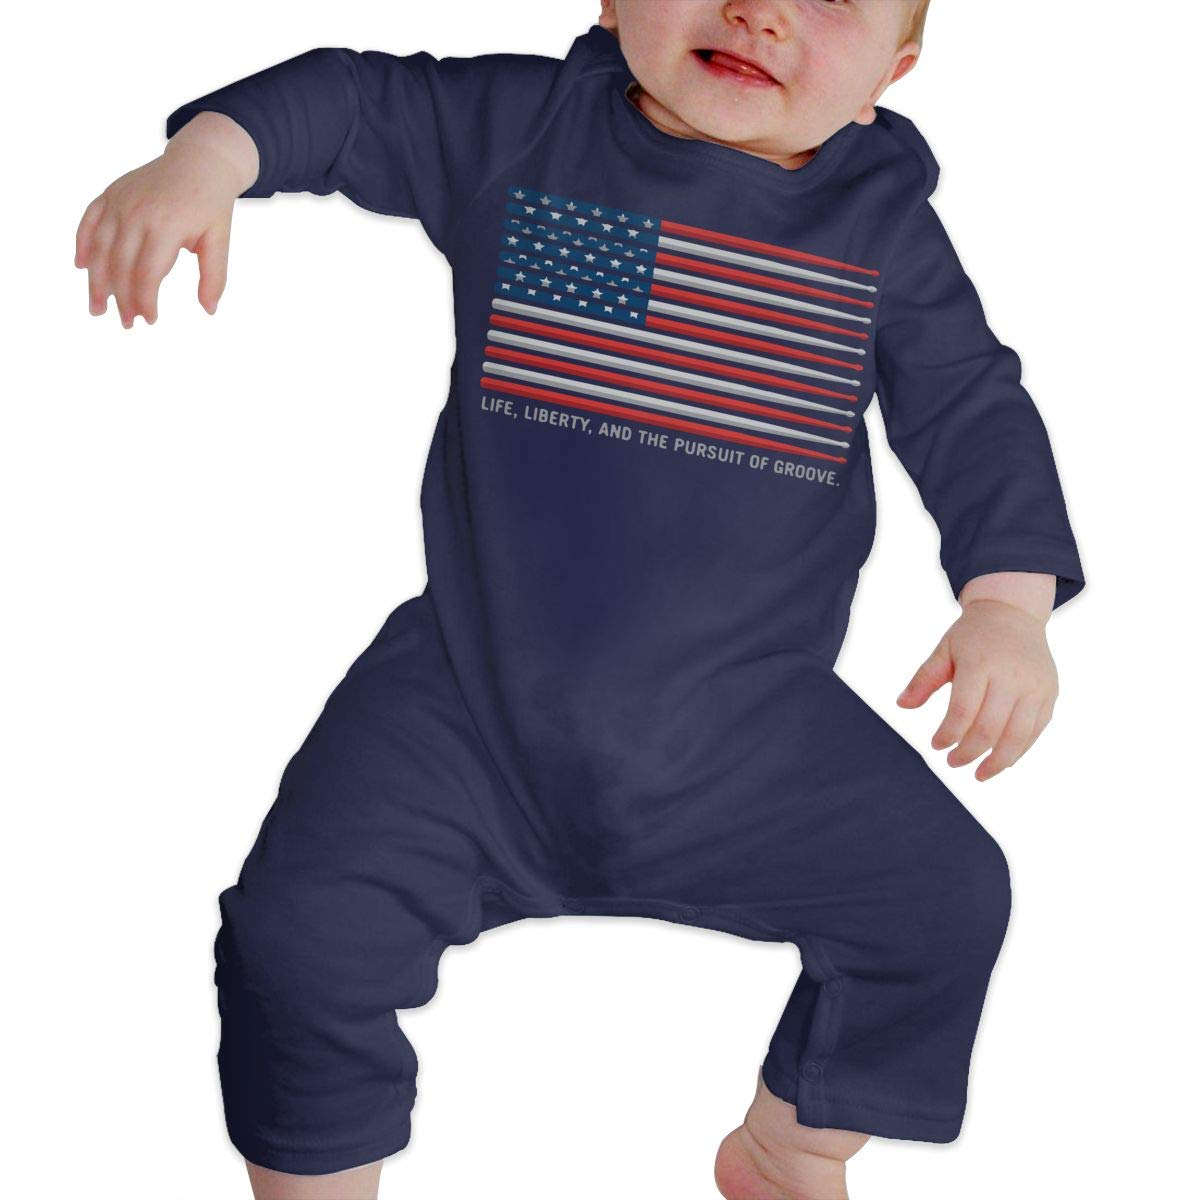 LBJQ8 American Drummer Drumstick Flag Infant Baby Girl Boys Sleep and Play Romper Jumpsuit Outfits Clothes